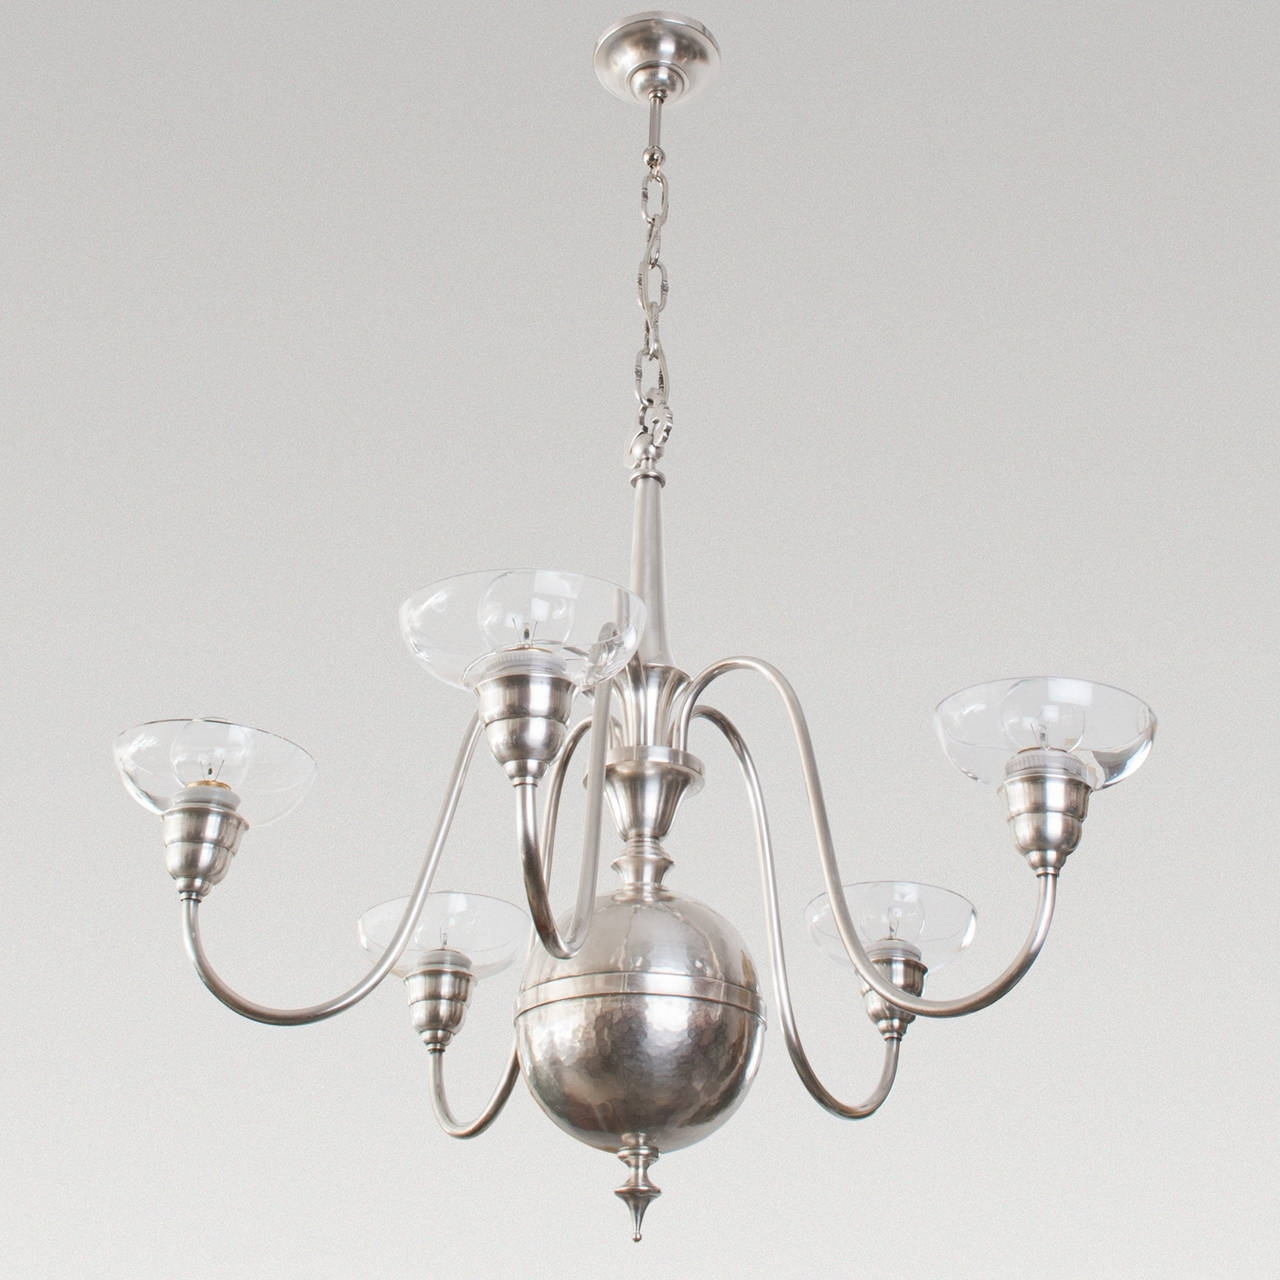 Modern Silver Chandelier Pertaining To Most Recently Released Modern Silver Chandelier : Chandelier Gallery (View 17 of 20)